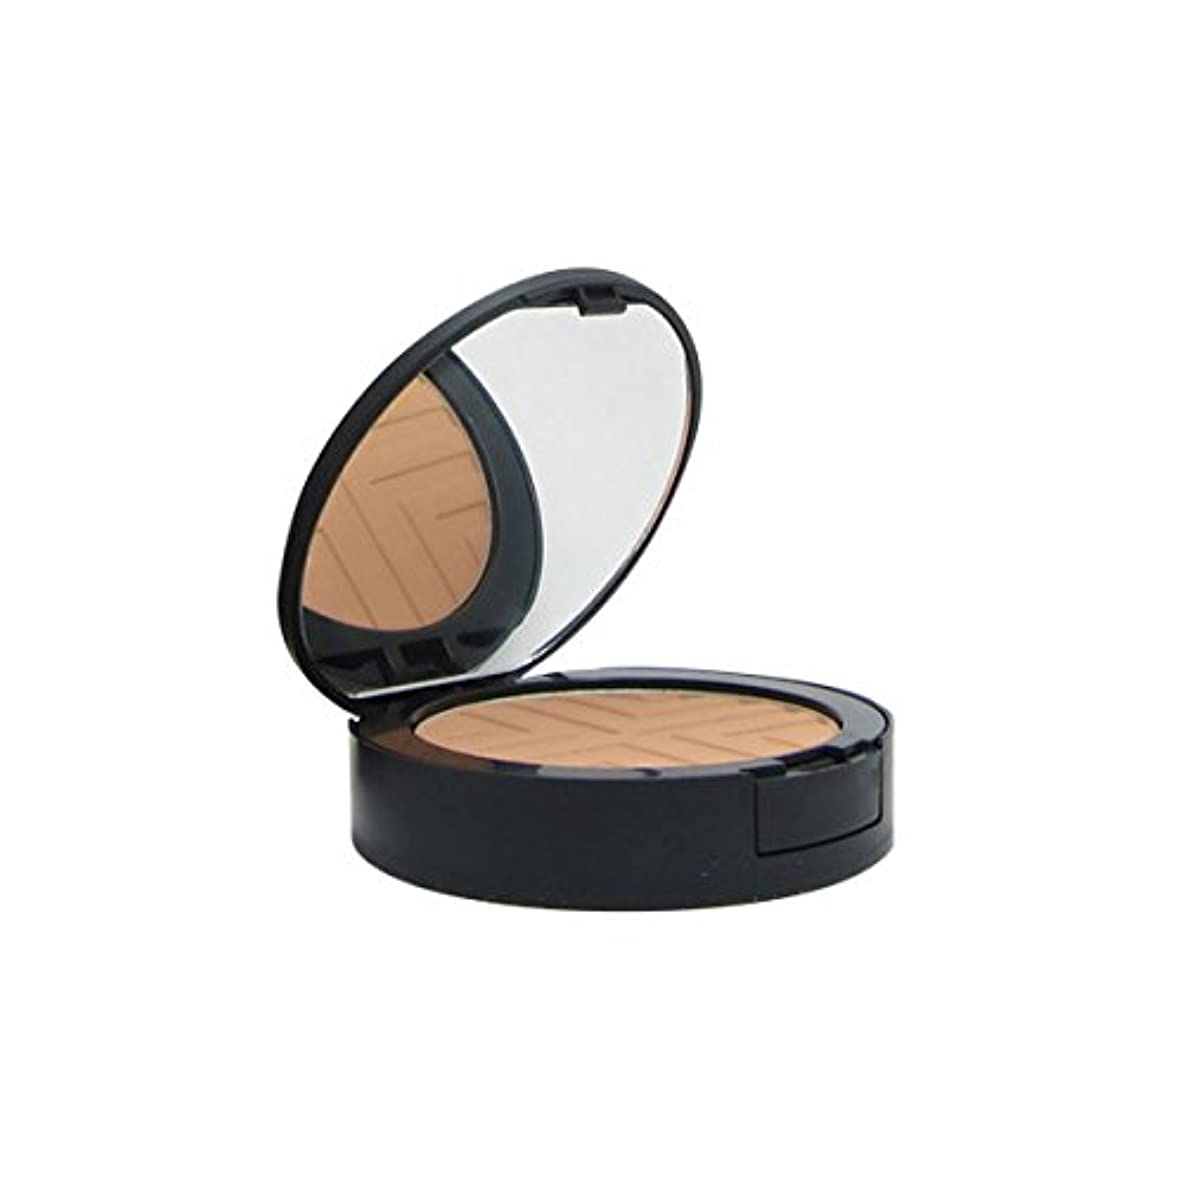 未使用コンパニオン店員Vichy Dermablend Covermatte Compact Powder Foundation 35 Sand 9,5g [並行輸入品]